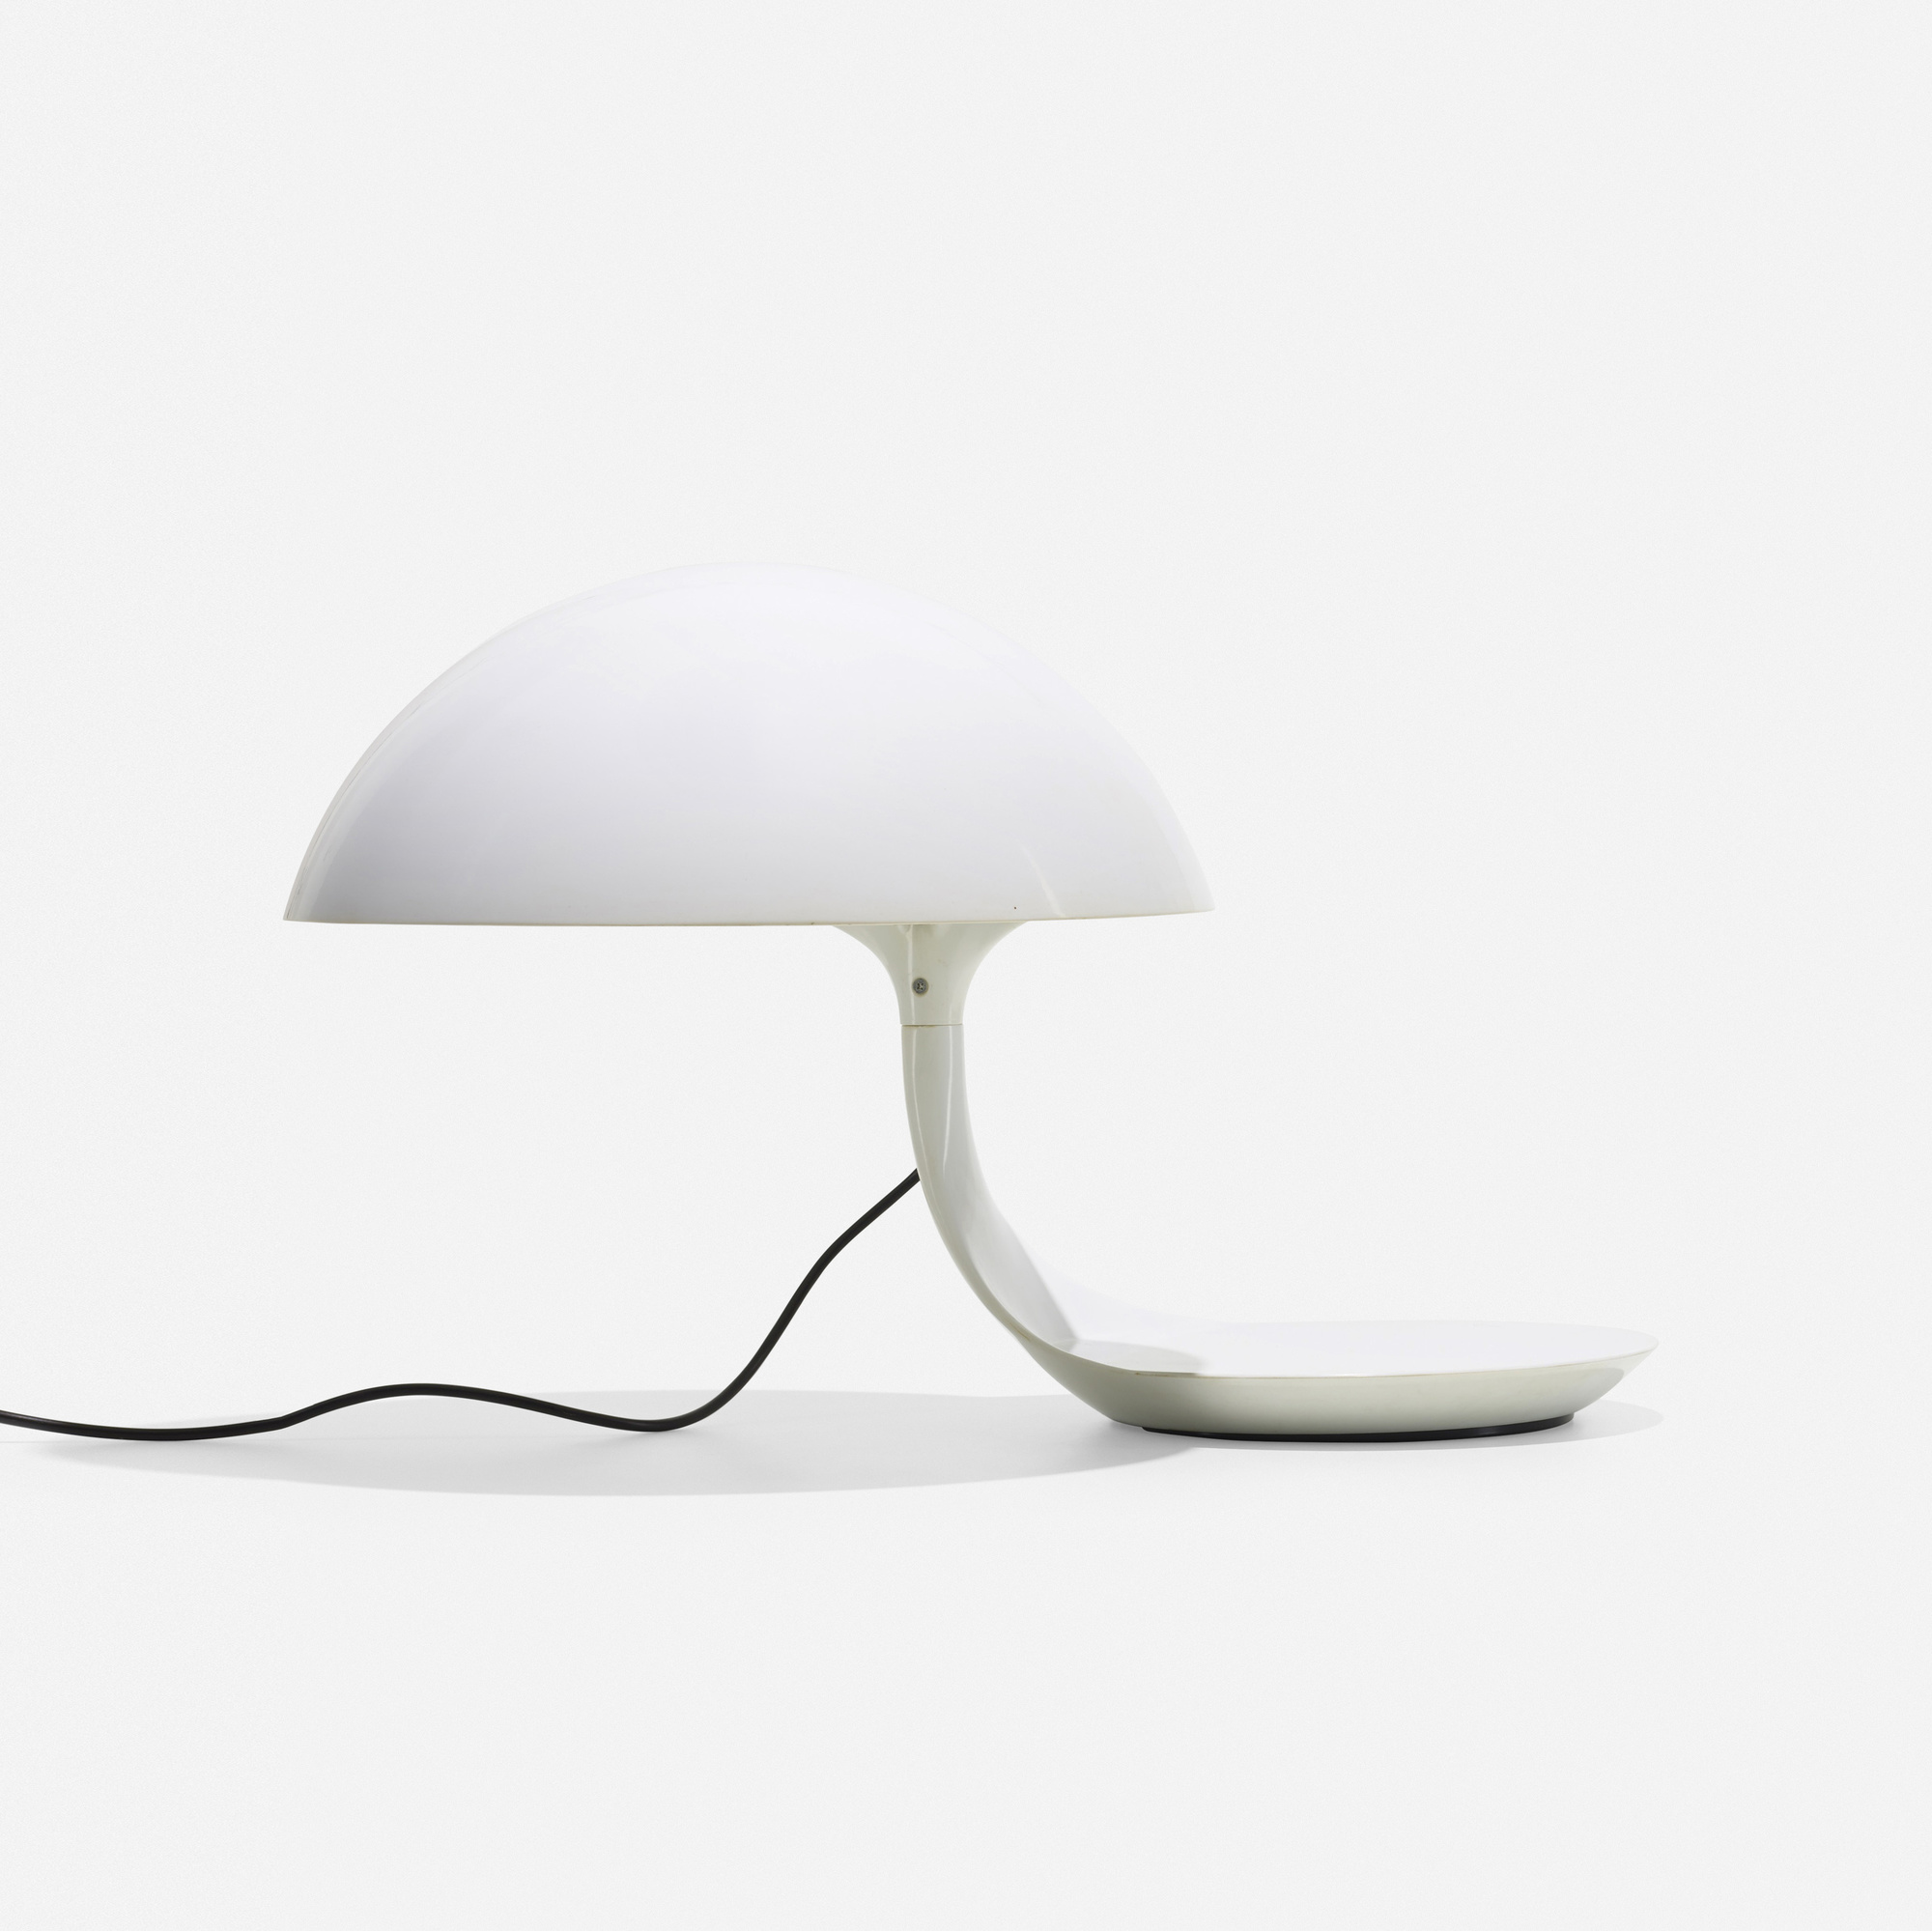 256: Elio Martinelli / Cobra table lamp (2 of 3)